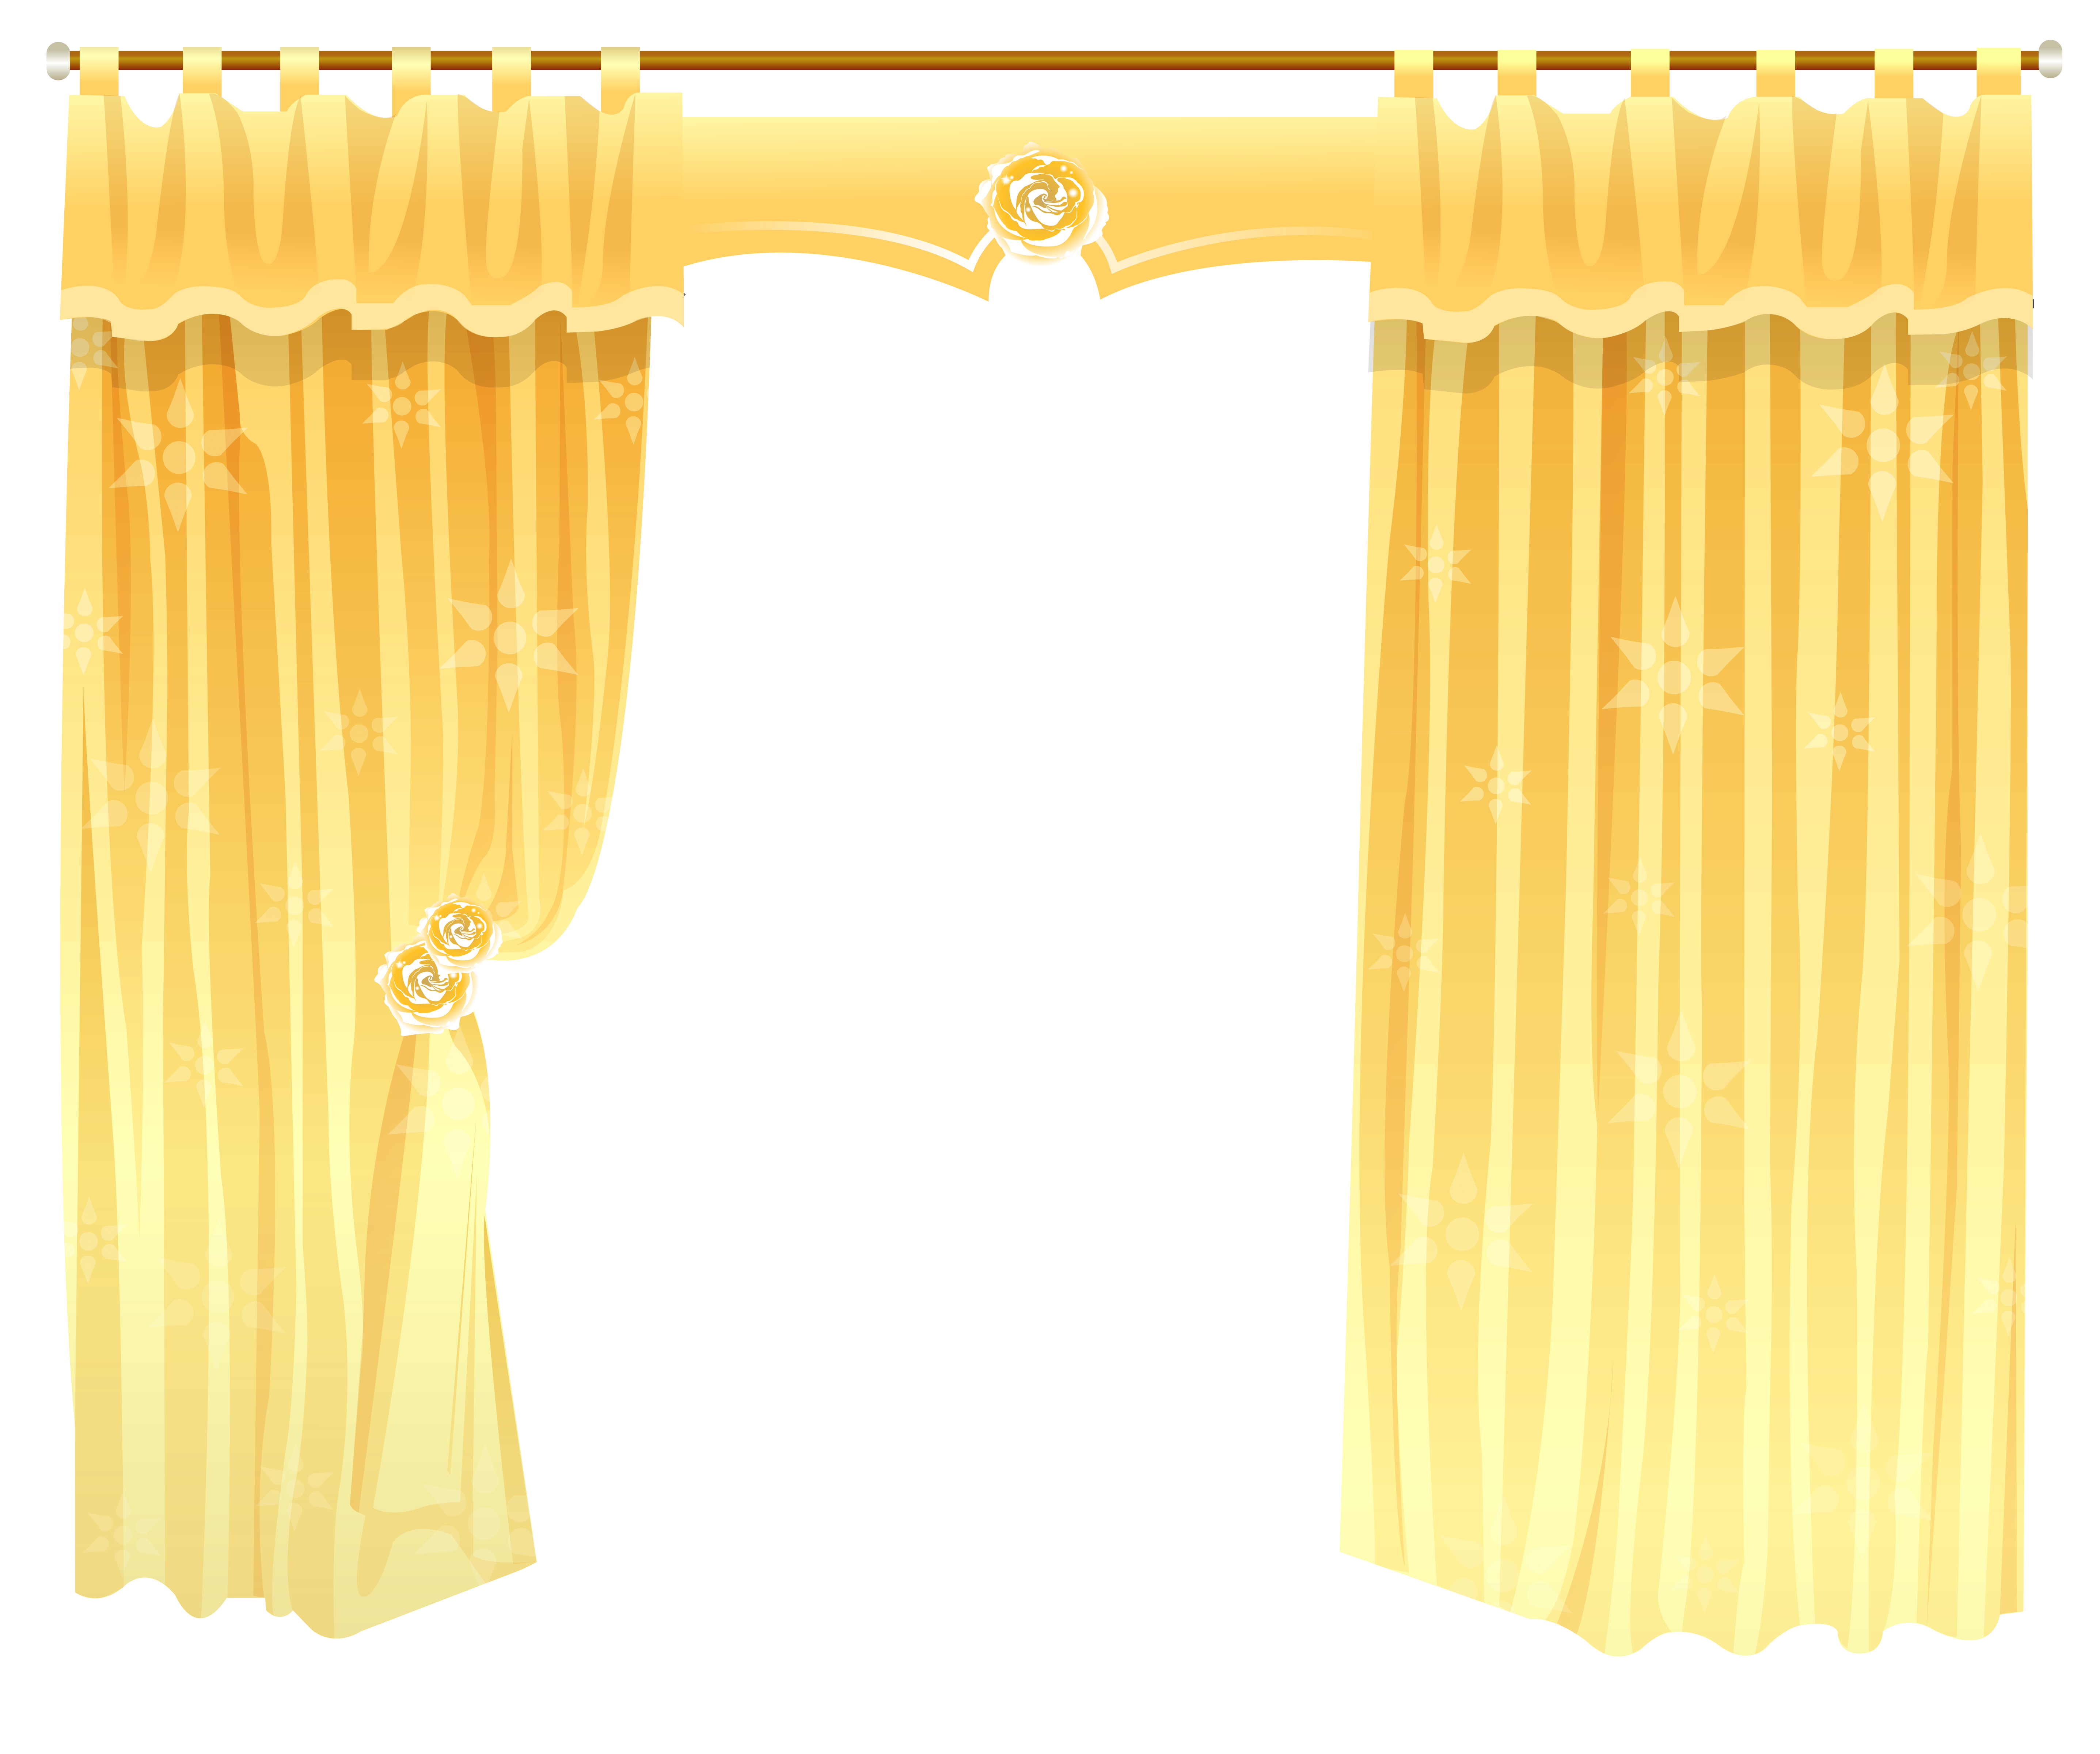 Curtains clipart cartoon. Yellow transparent png gallery